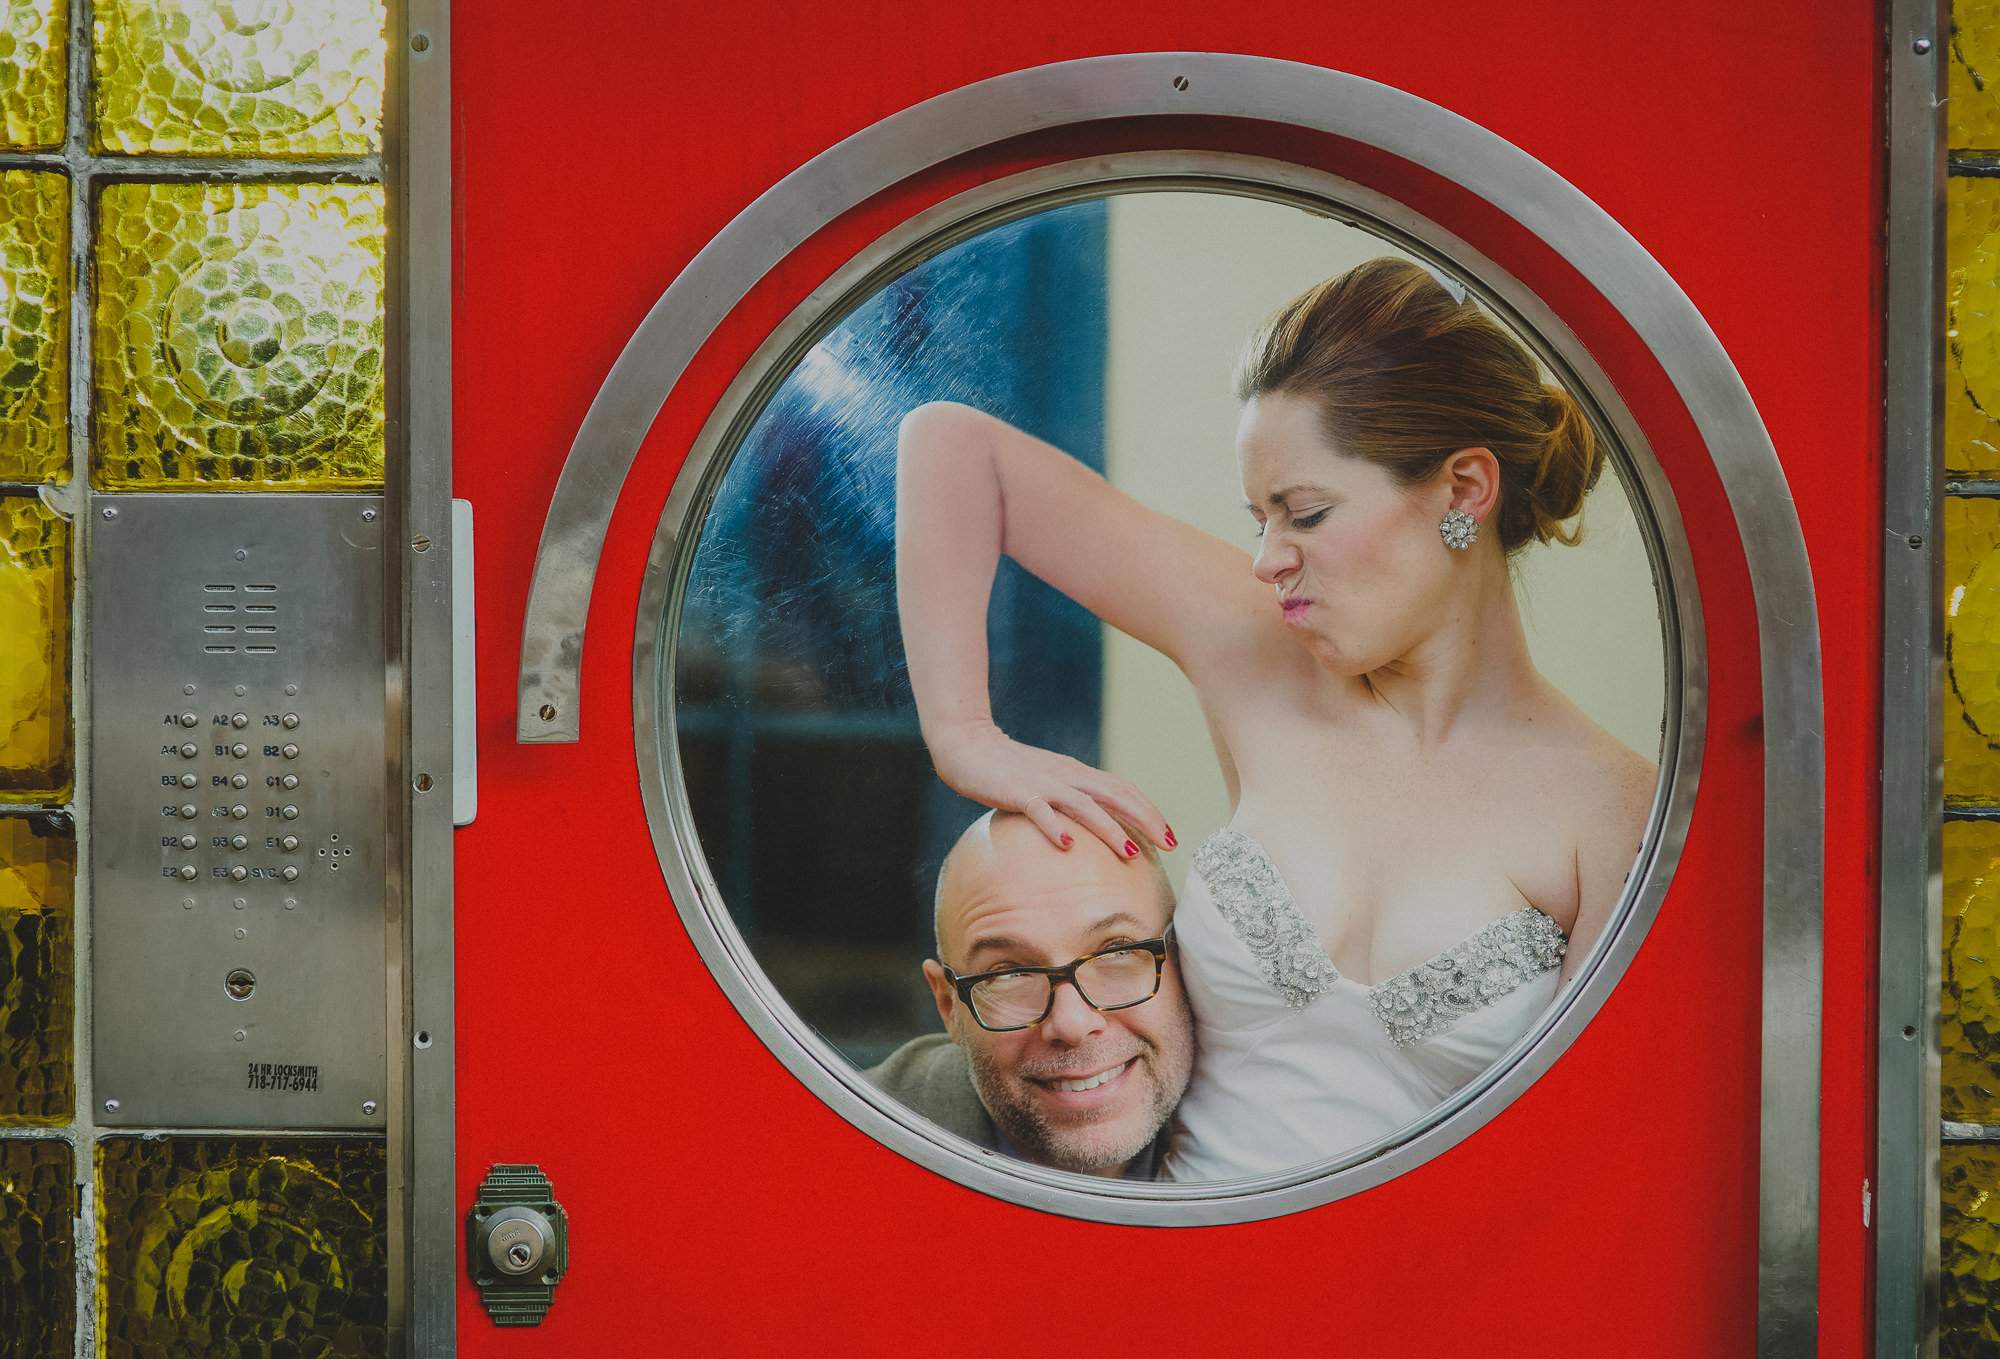 Hilarious photo of bride pushing groom down - photo by The Brenizers